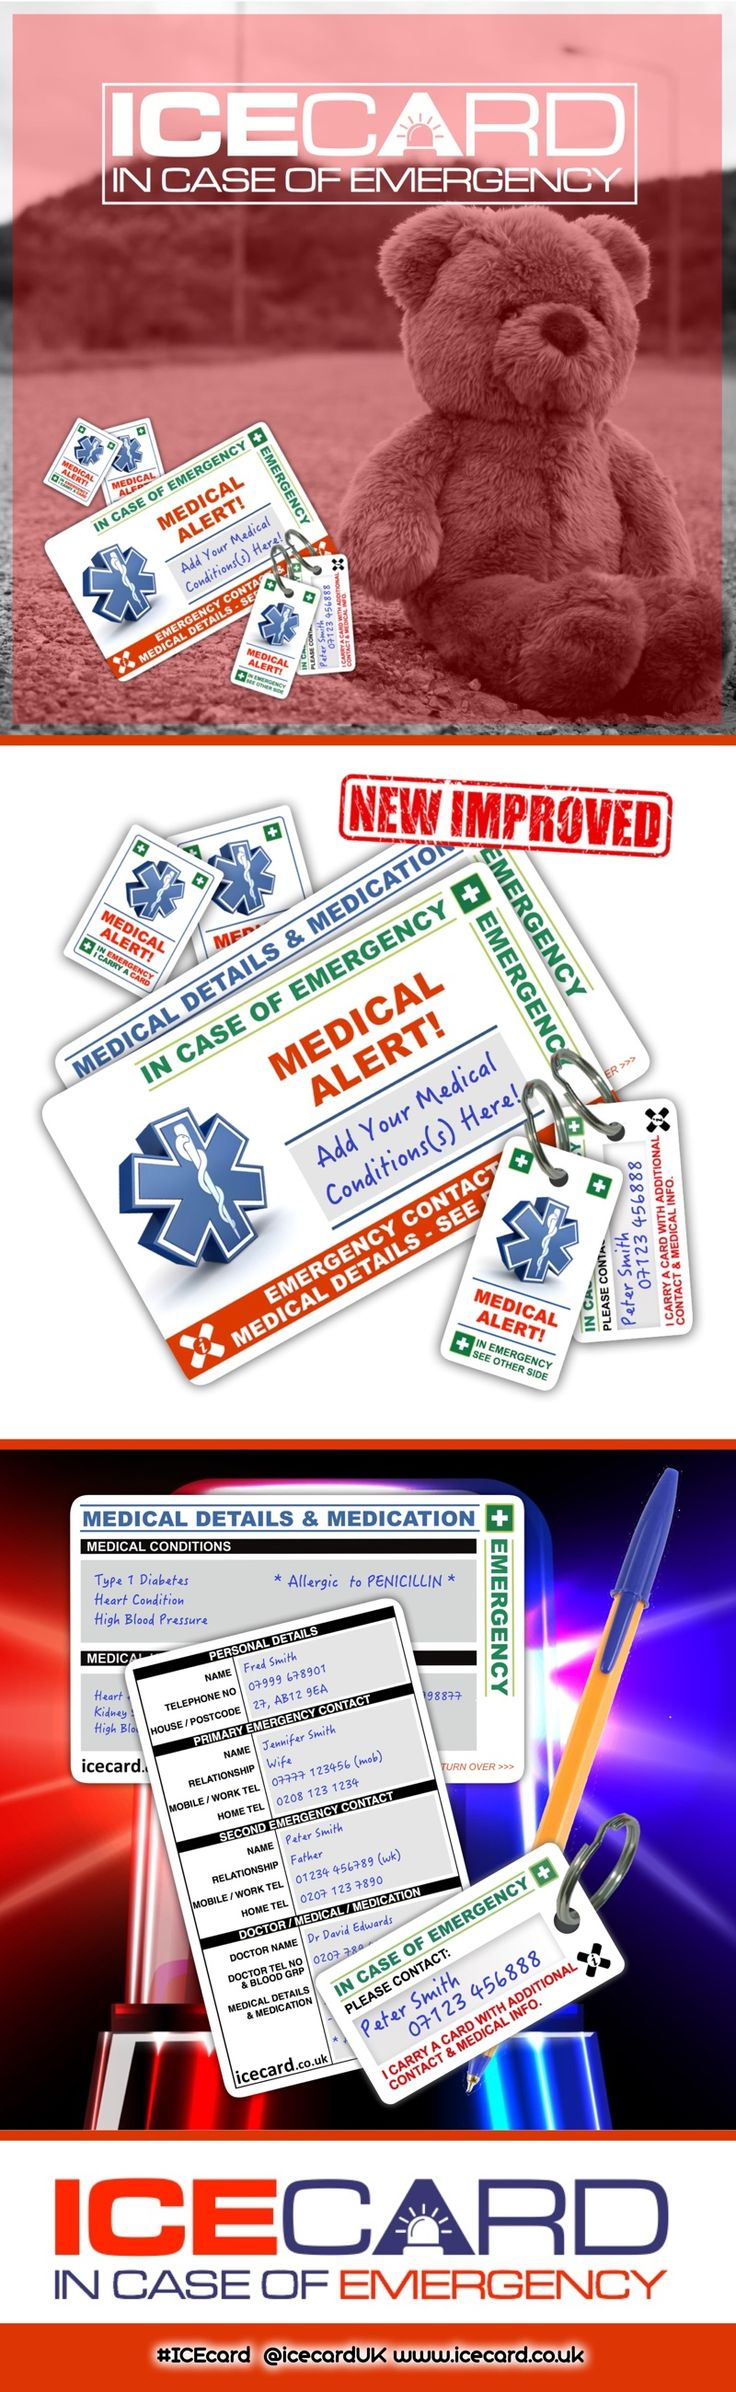 Your In Case of Emergency (I.C.E.) Card provides concise details on who should be contacted in the event of an accident or incident and key medical information.